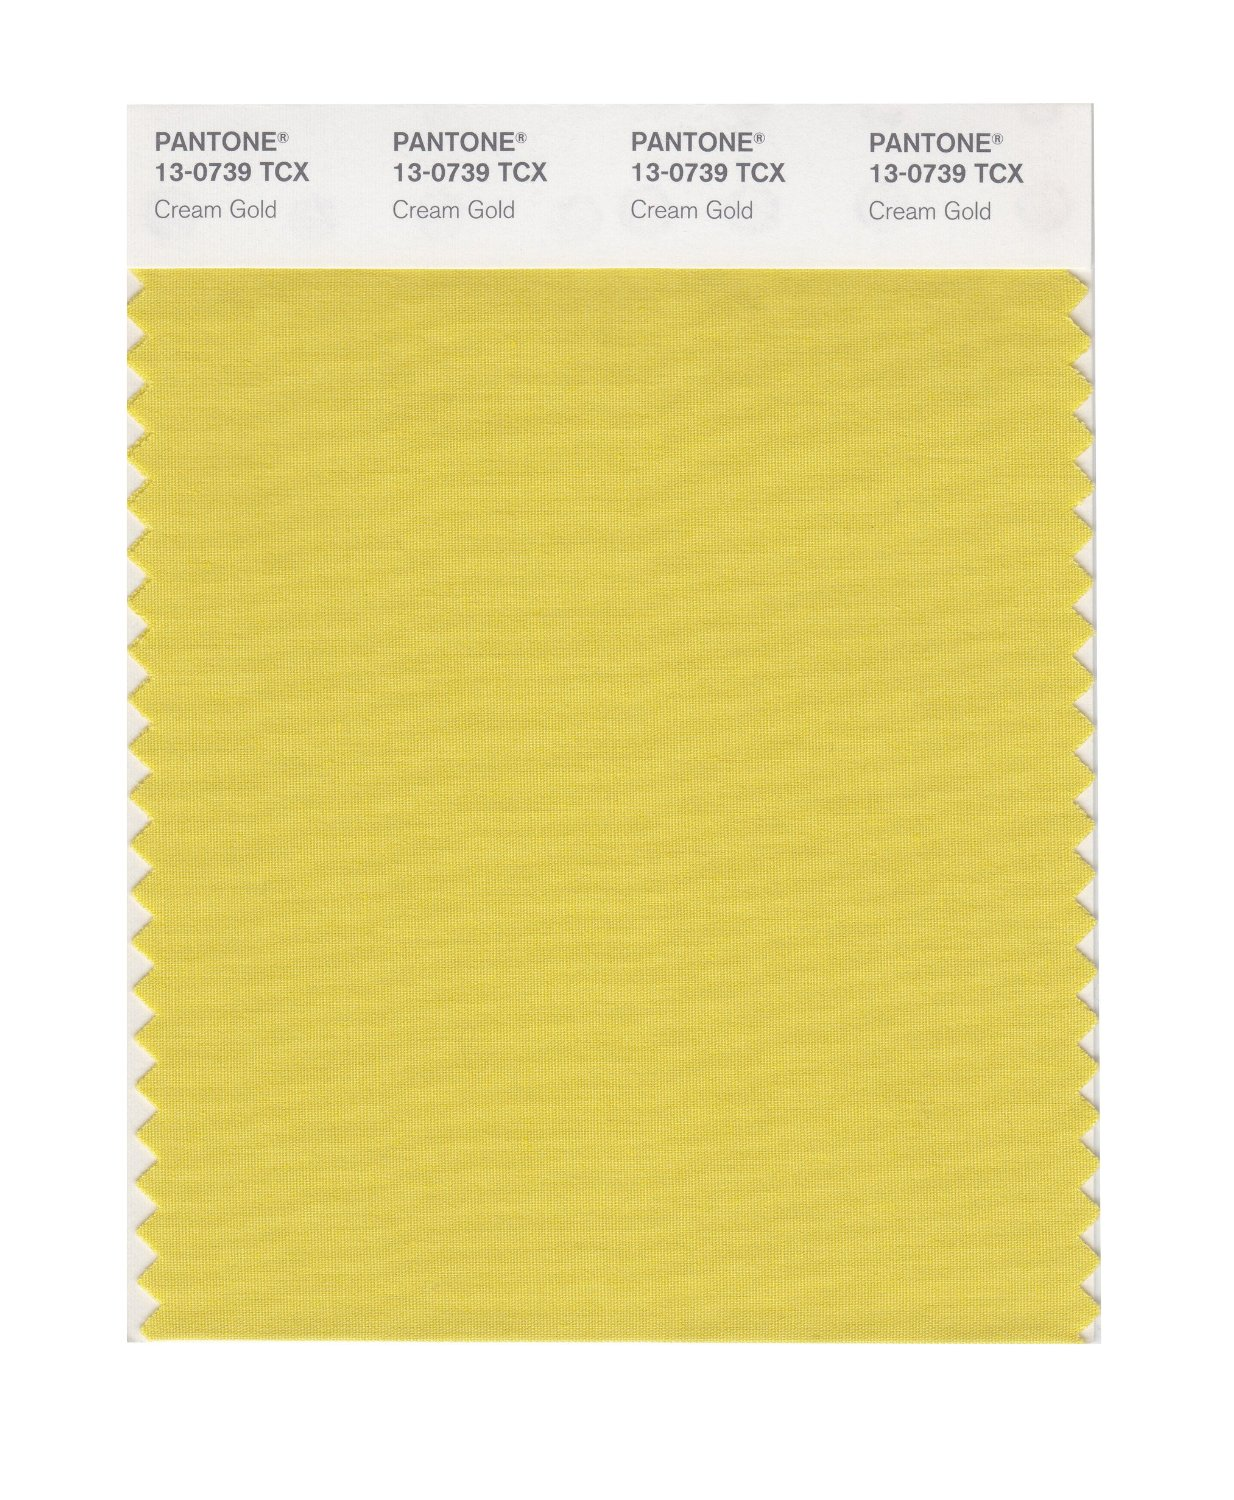 Pantone Smart Swatch 13-0739 Cream Gold